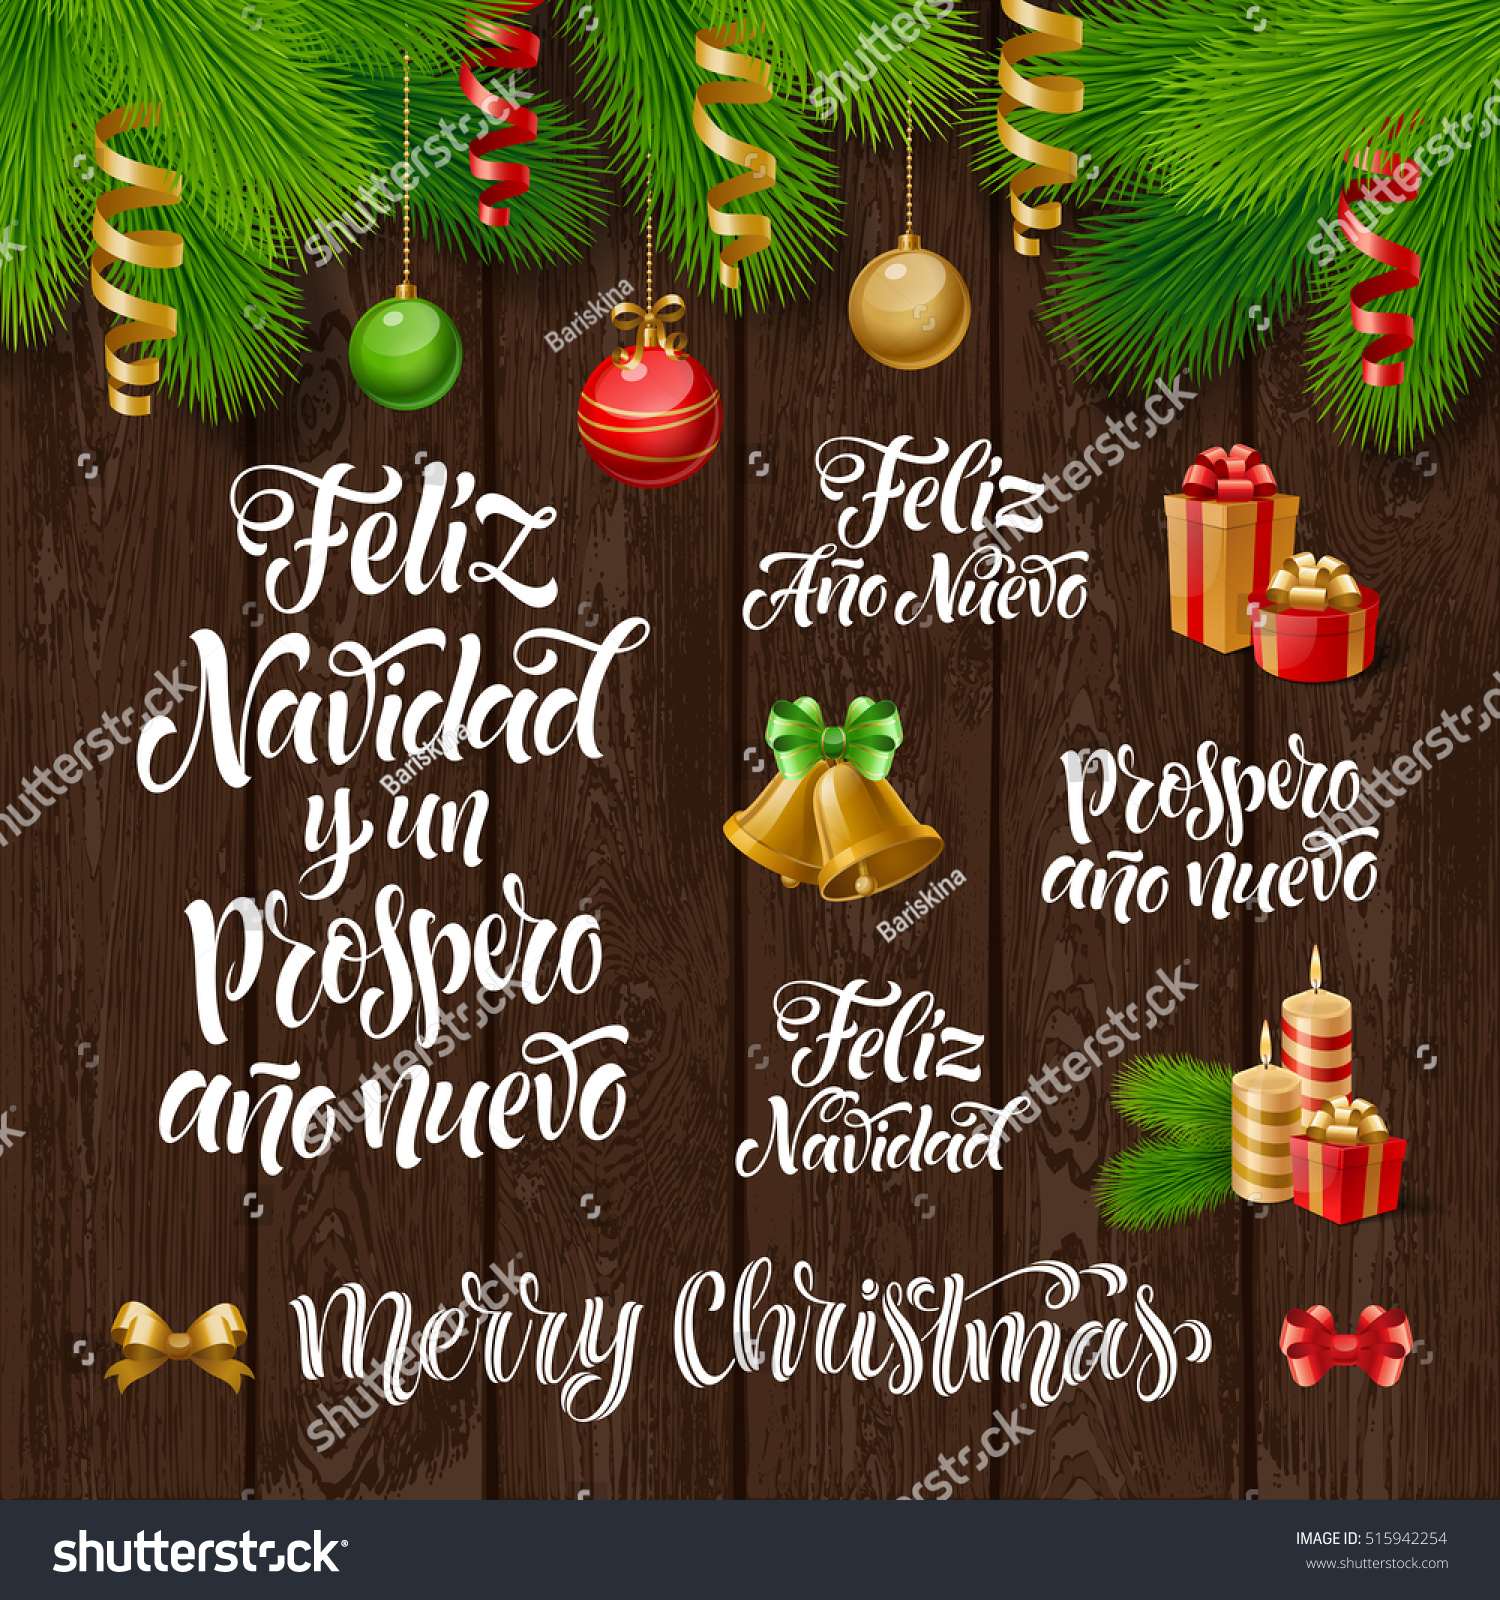 Feliz navidad and merry christmas